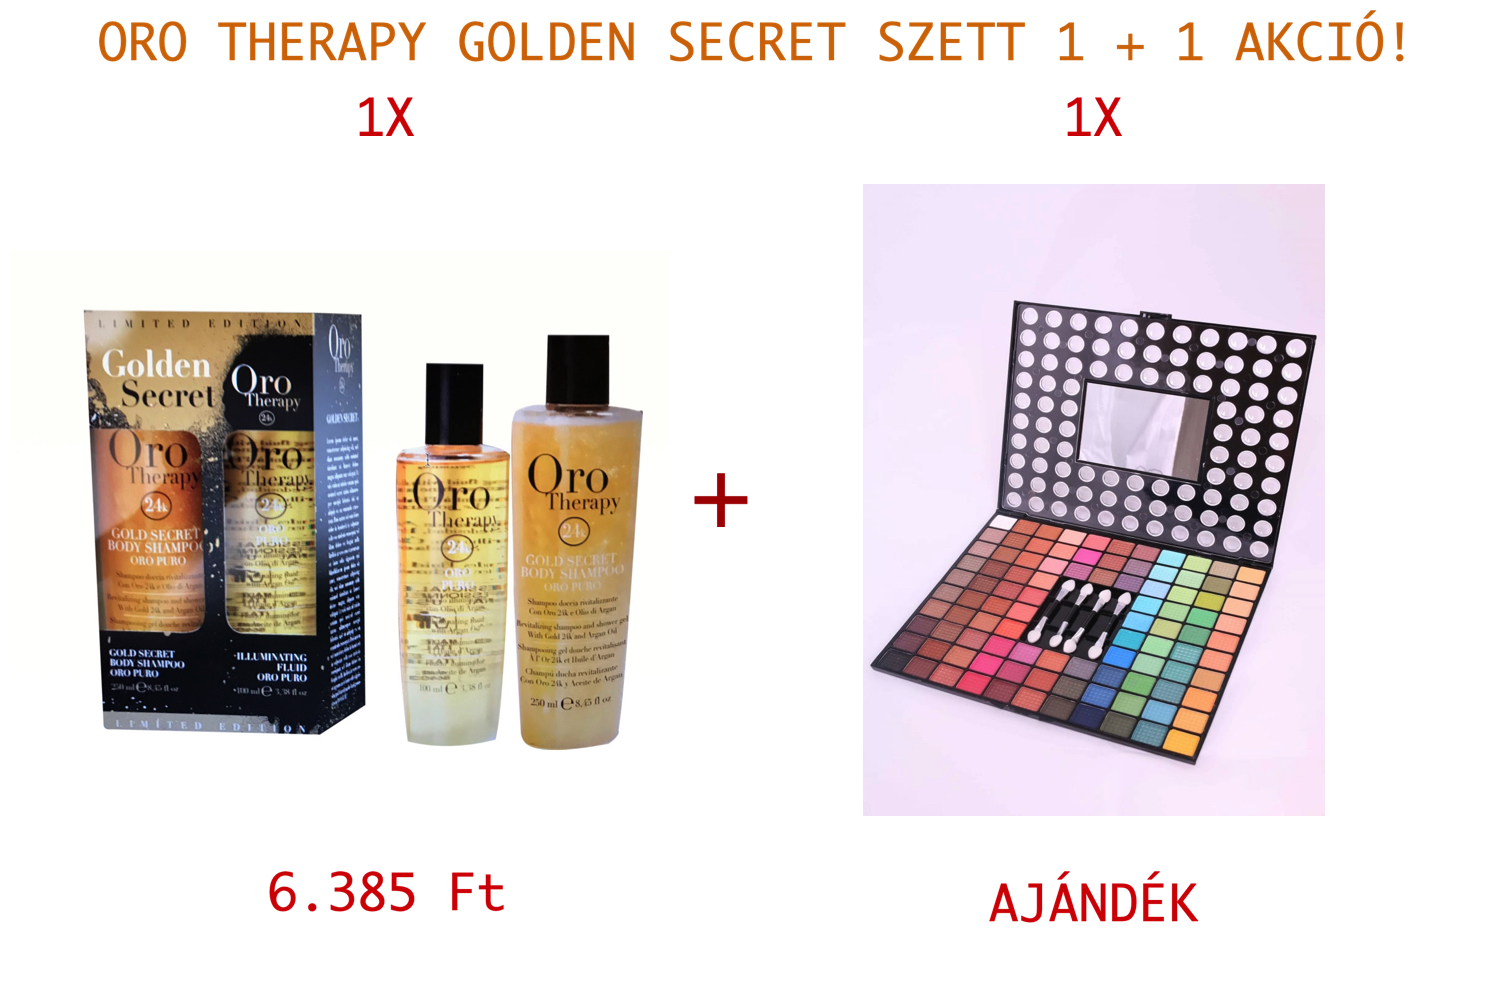 FANOLA Oro Therapy Golden Secret Szett (250 ml + 100 ml) 1+1 AKCIÓ